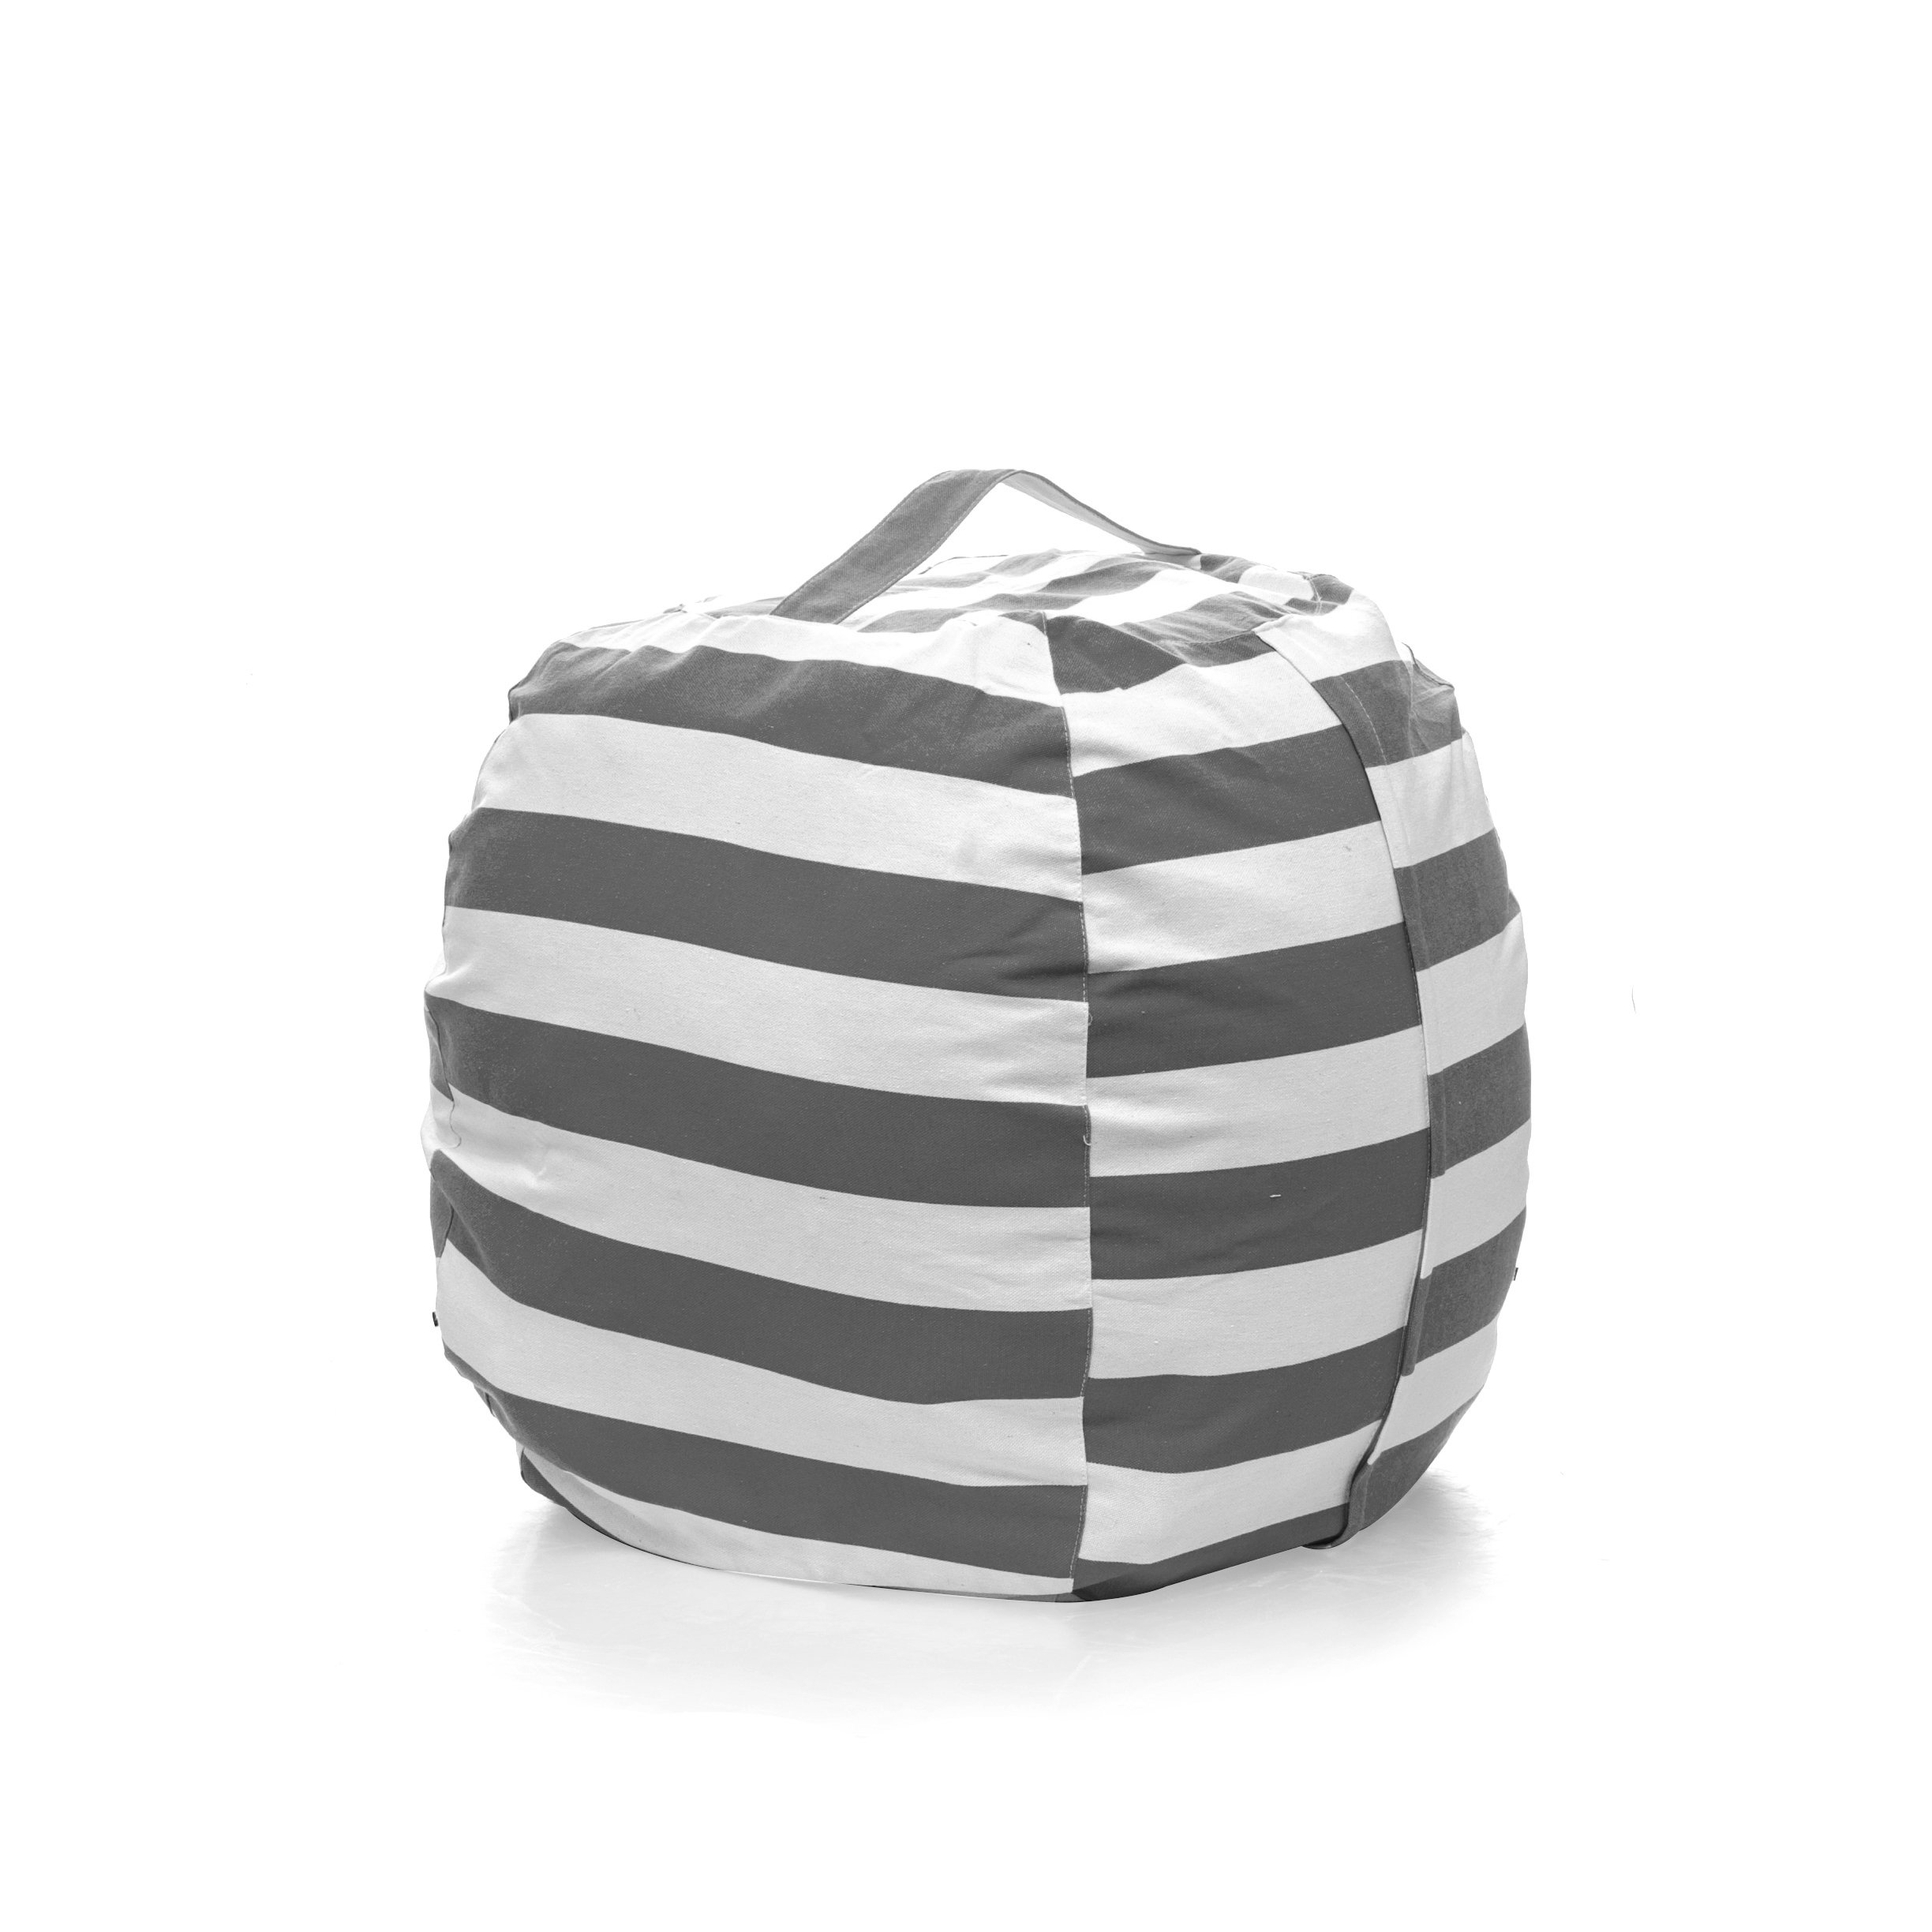 PJS-MAX Storage Bean Bag Chair for Kids - Stuffed Animal Chair Storage Bag, Jumbo Size Perfect for Soft Toys, Clothes, Blankets. 5 Colors Available (Gray, Extra-large)